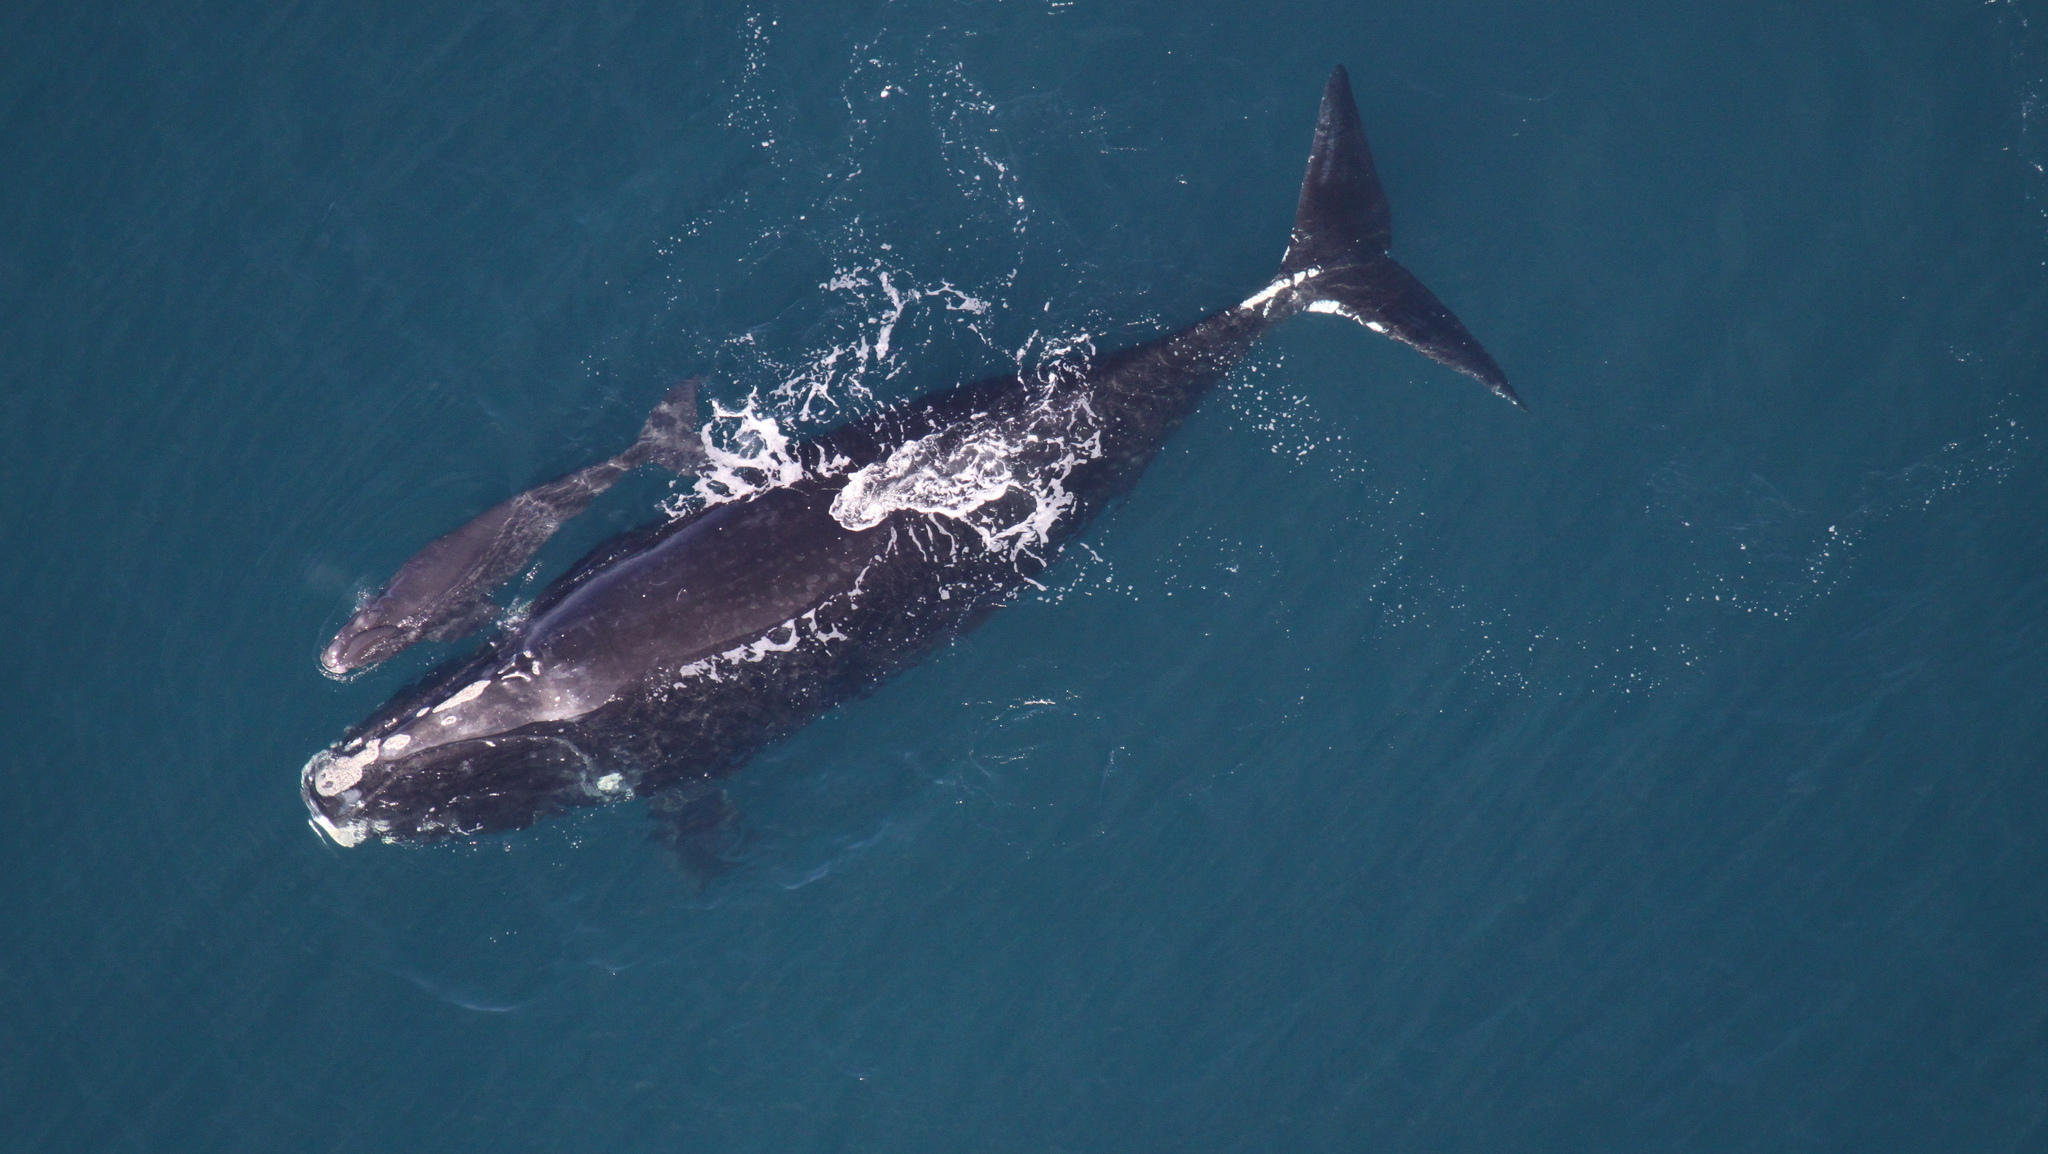 endangered whales The north-atlantic right whale is one of the most endangered of all large whales, with a long history of human exploitation and no signs of recovery despite protection from whaling since the 1930s.